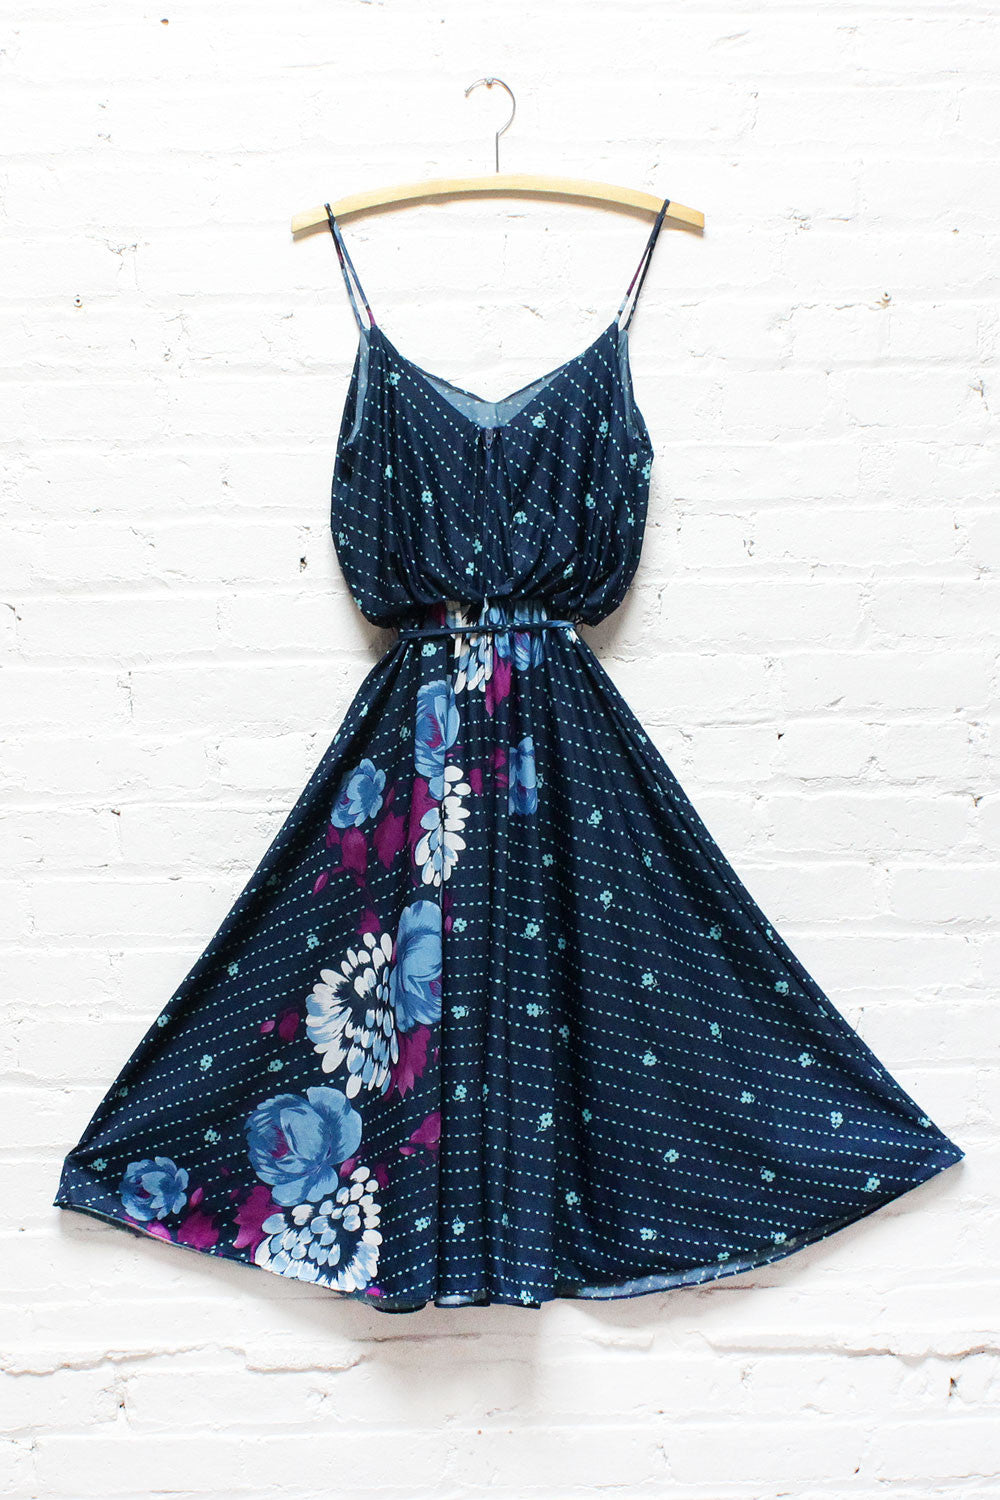 70s Blueberry Dress S/M